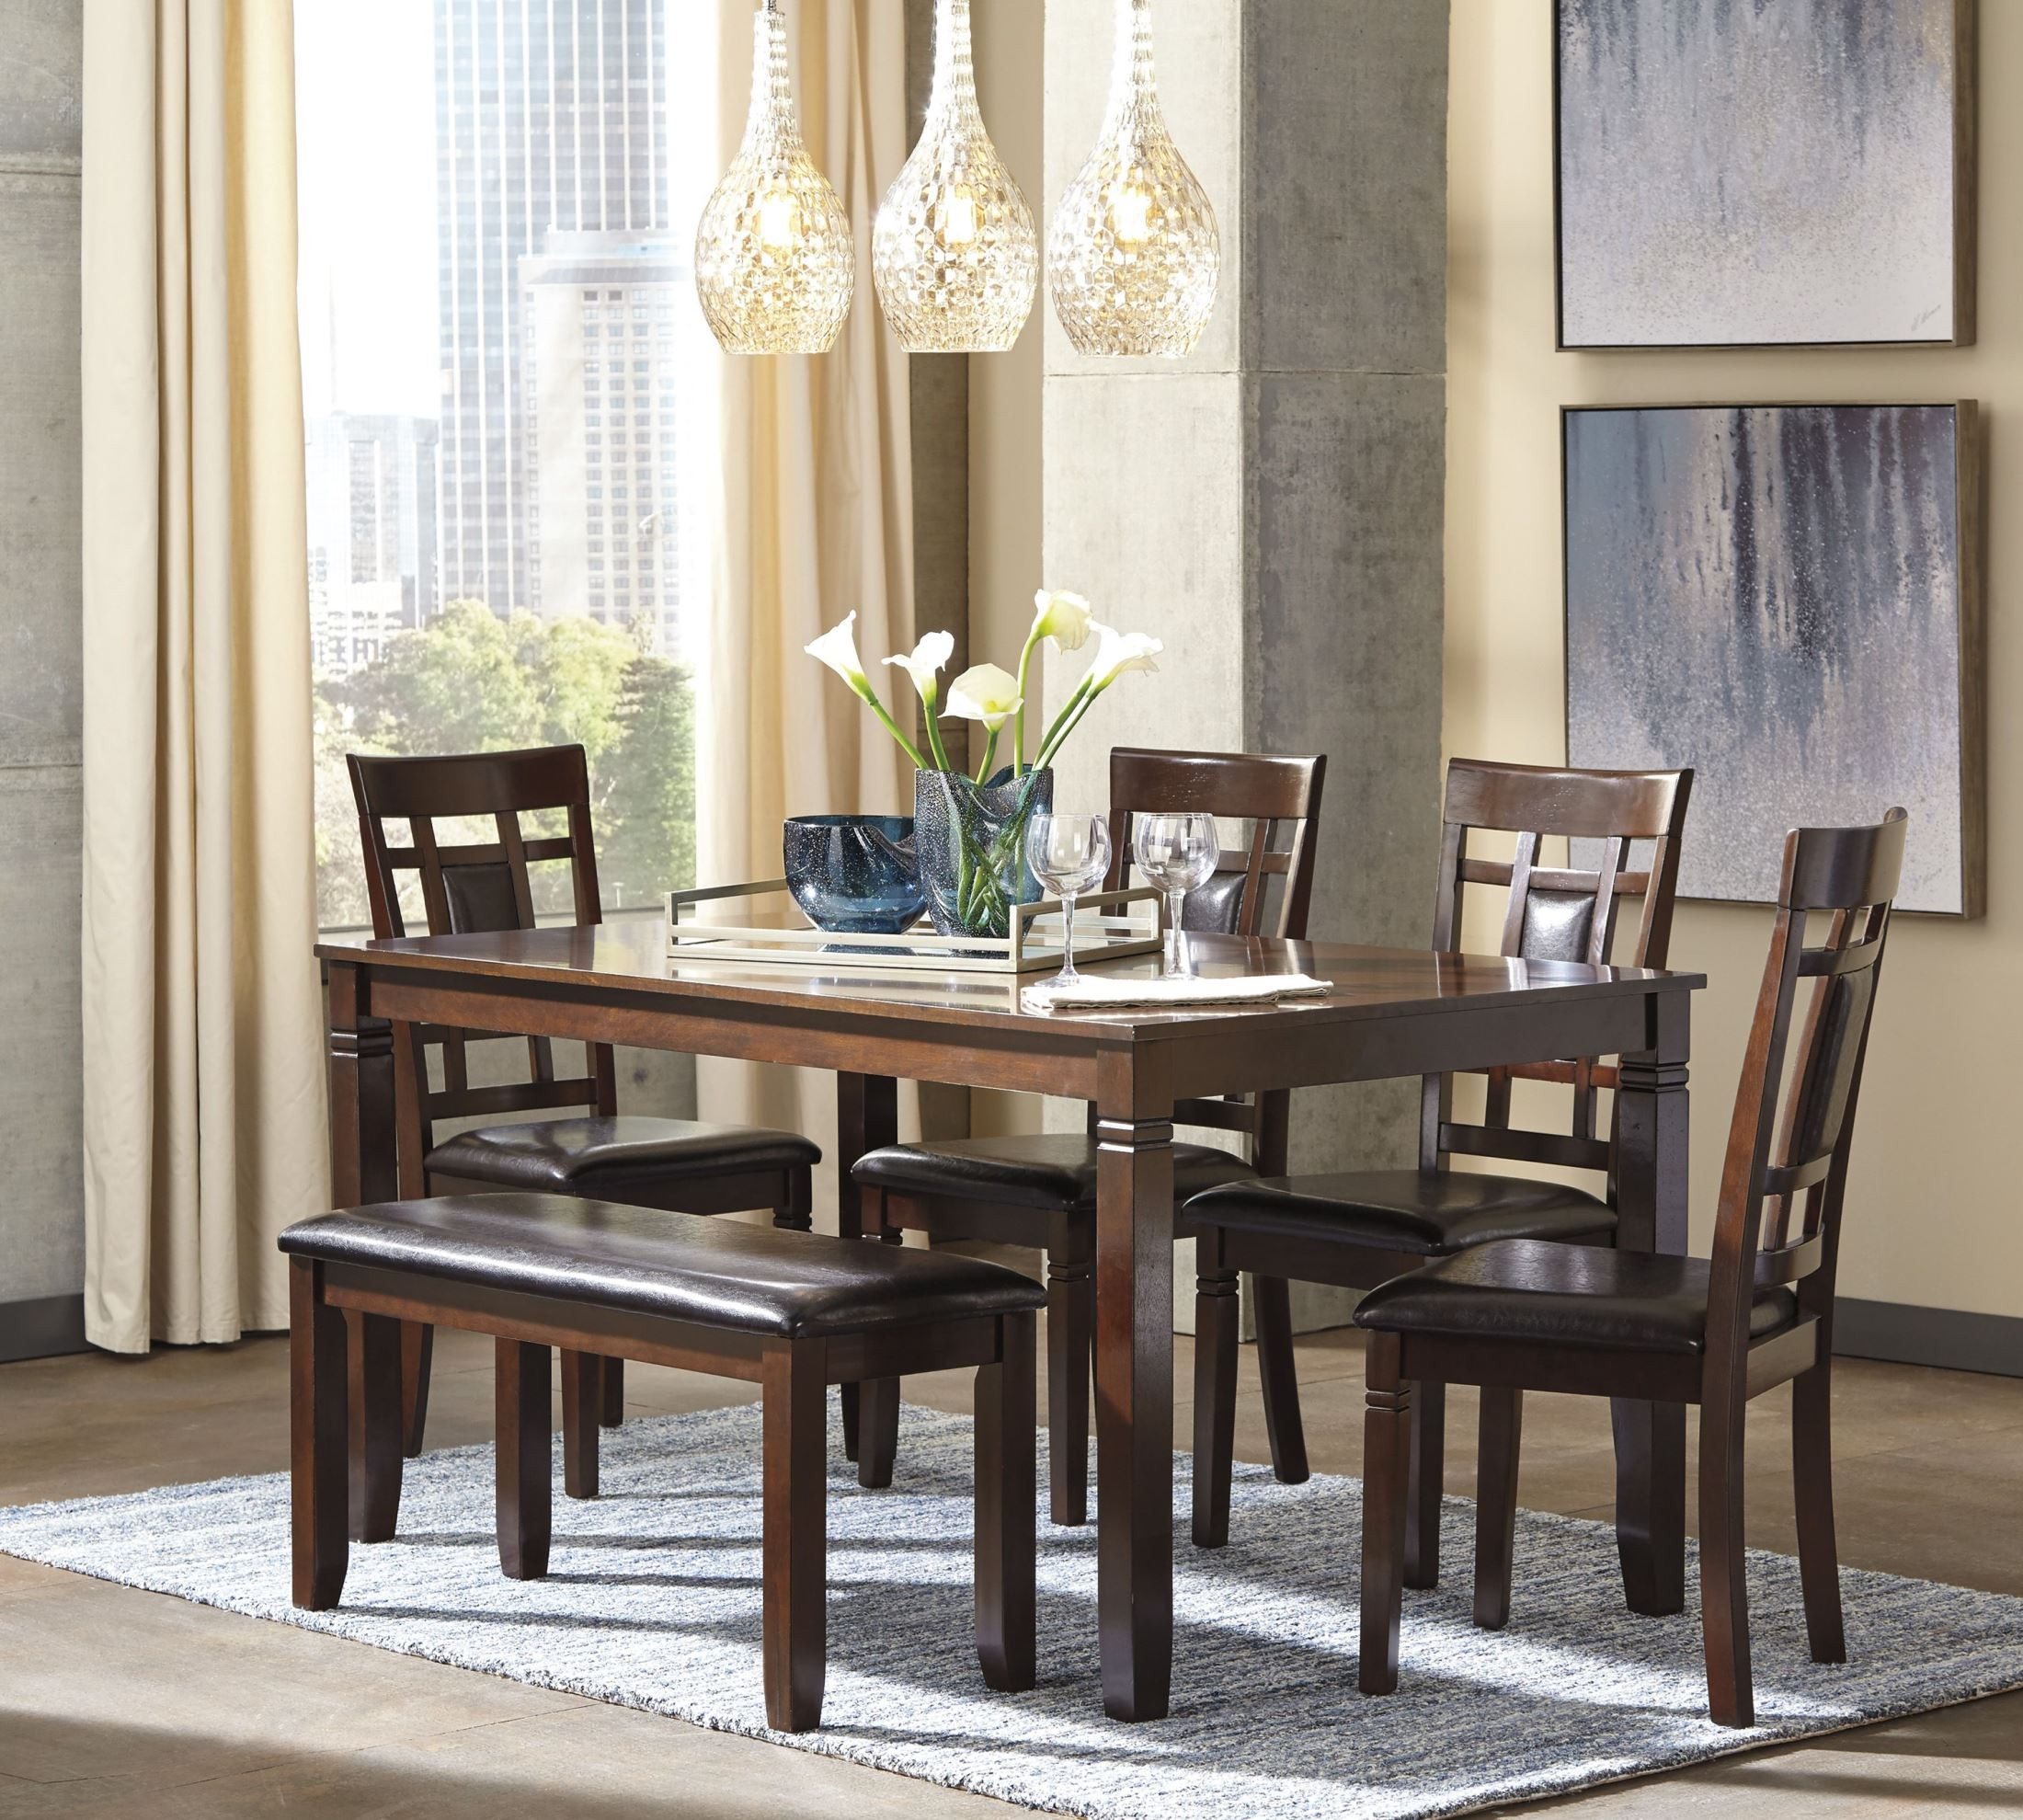 Dining Room Sets For 6 Of Bennox Brown 6 Piece Rectangular Dining Room Set D384 325